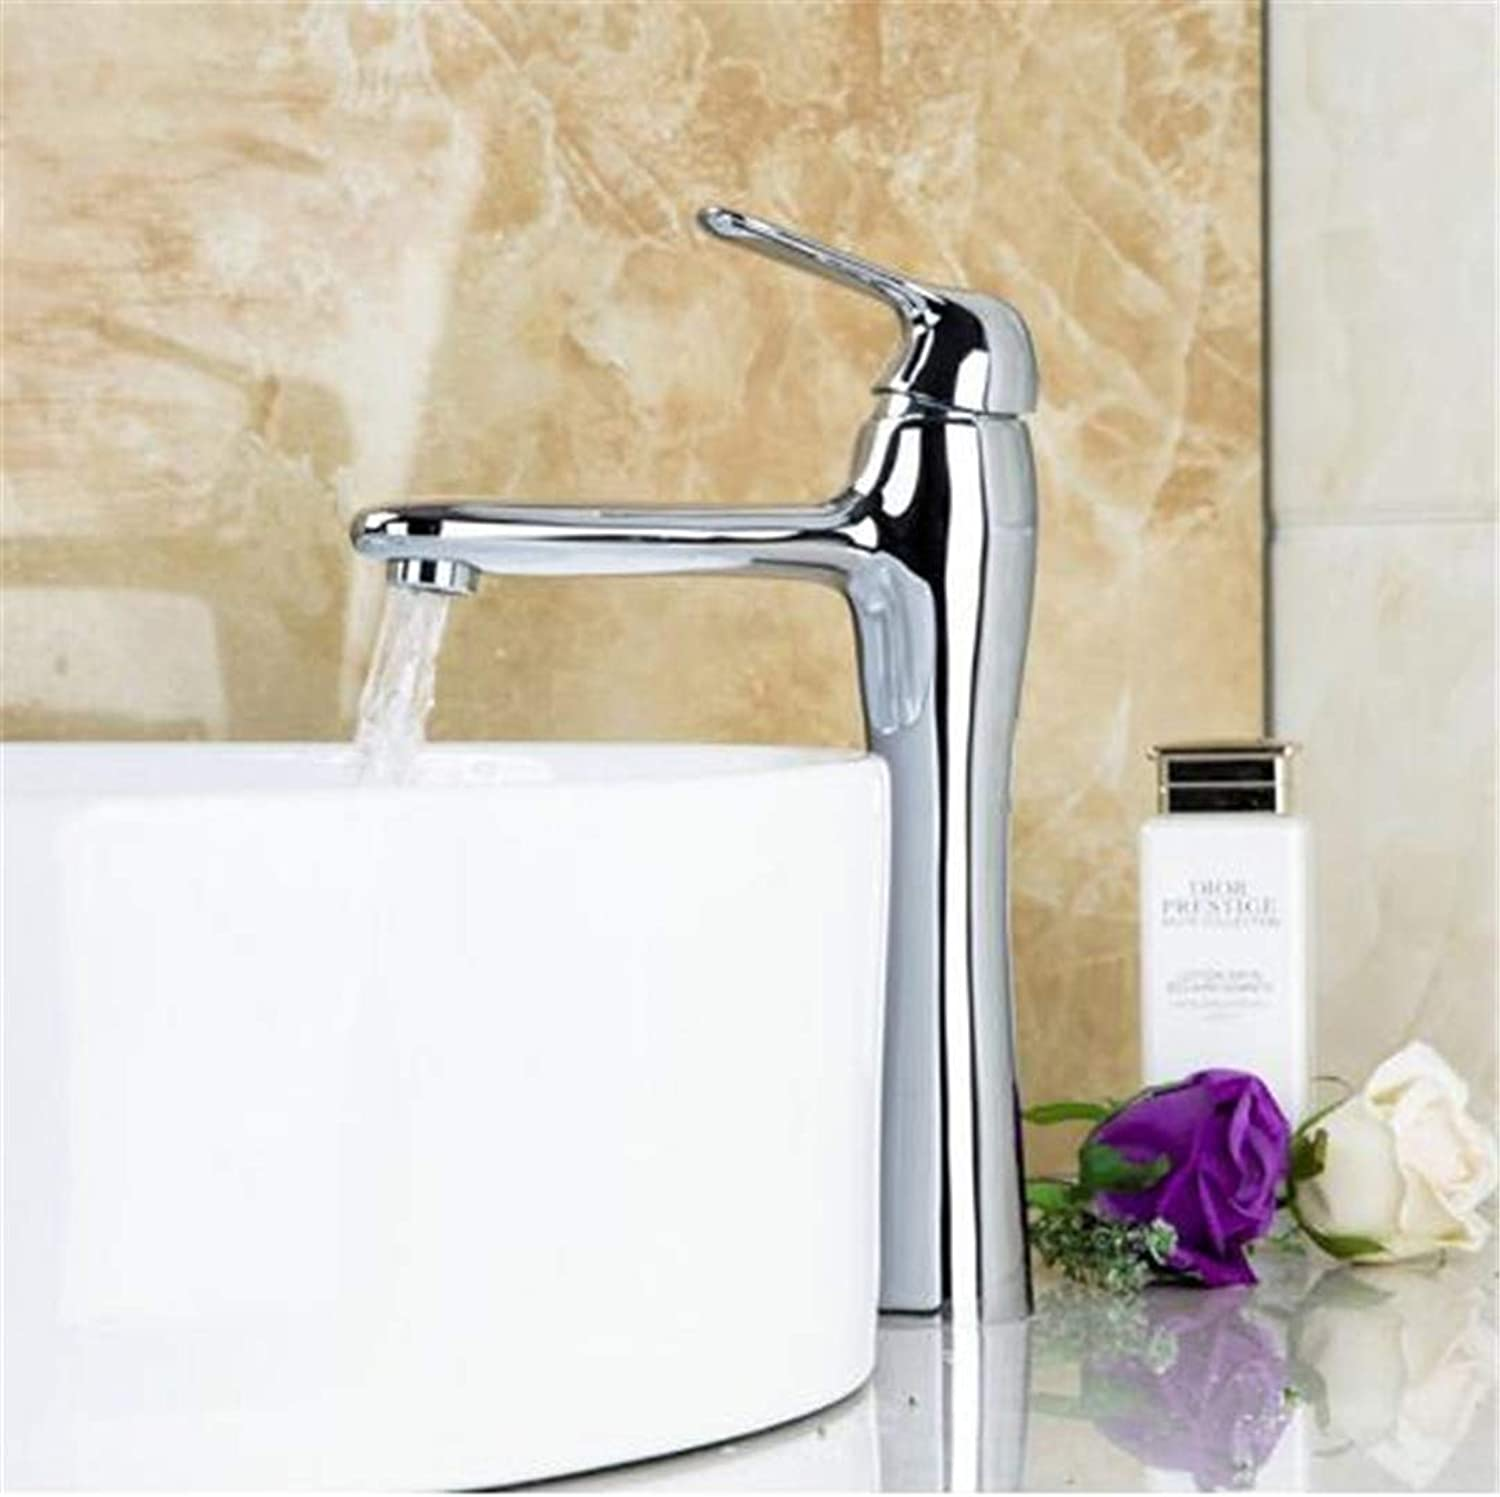 Oudan Taps Kitchen Faucet Bathroom Taps Faucet Waterfall Tapbathroom Basin Vessel Sink Mixer Hot Cold Water Tap Deck Mounted Single Handle Faucet Bathroom Chrome Basin Faucets (color   -, Size   -)